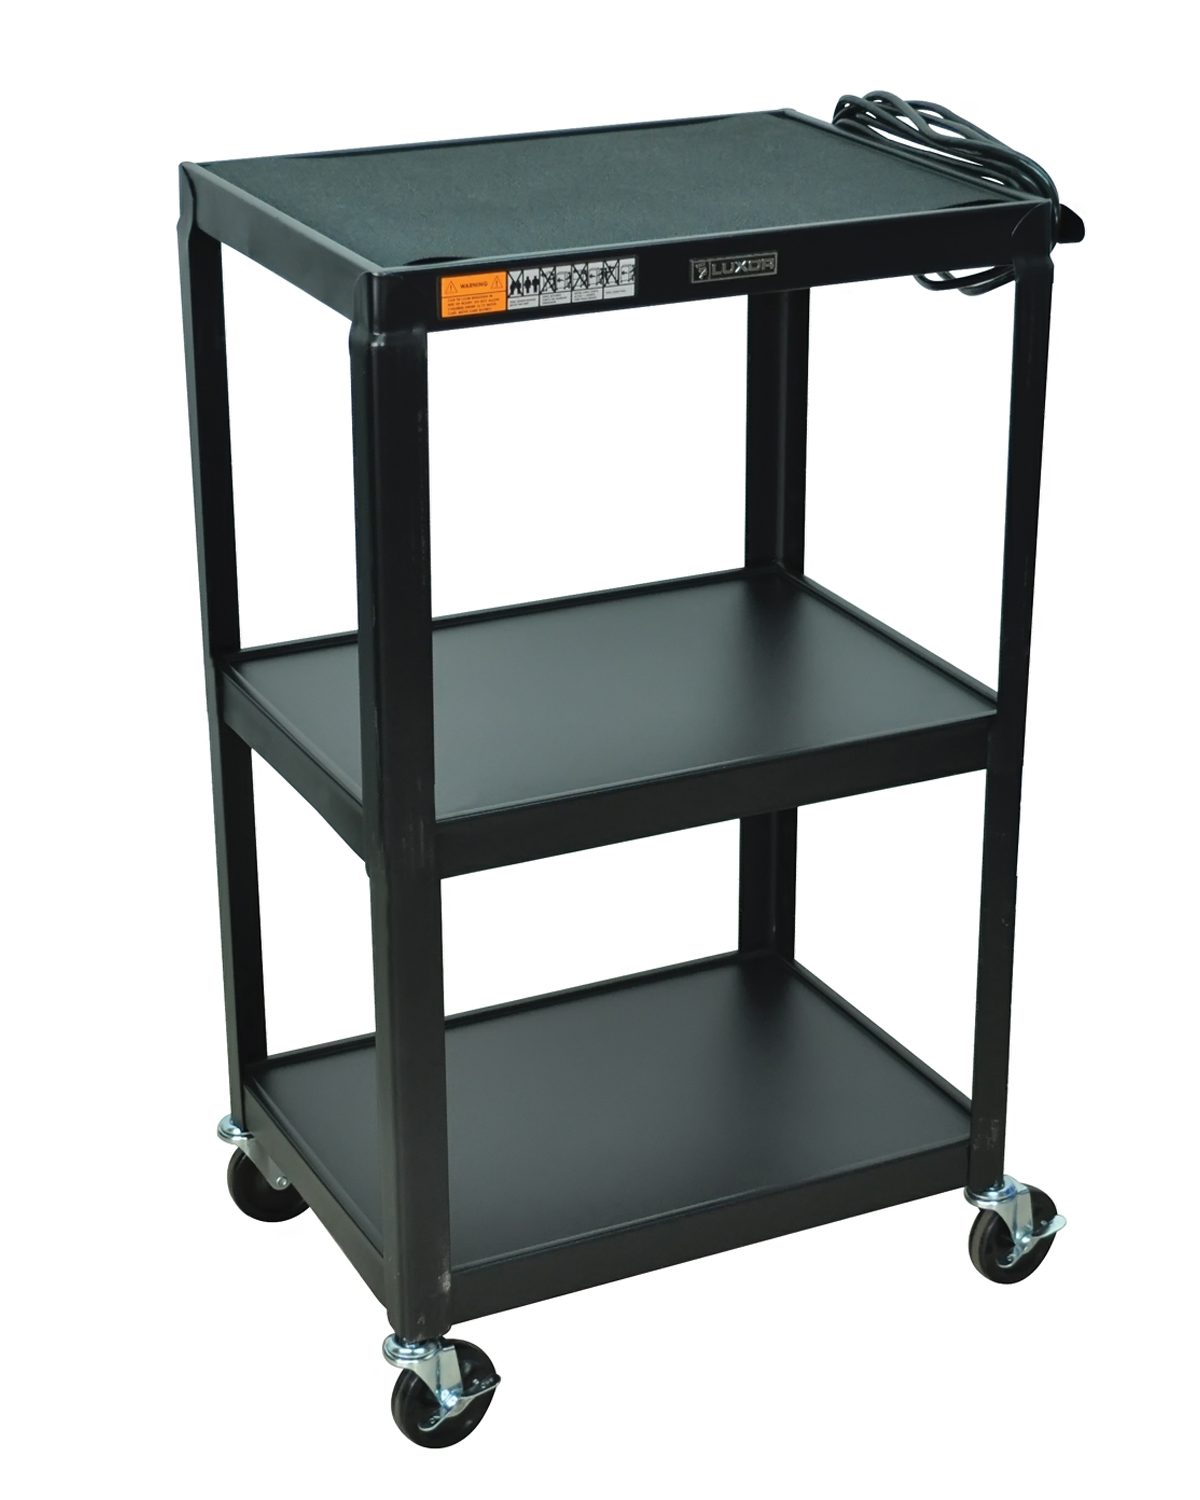 "Luxor 2 Steel Shelf Fixed Height Multipurpose Mobile Rolling Av Table Cart Black with 3 Electric Outlet 42""H at Sears.com"